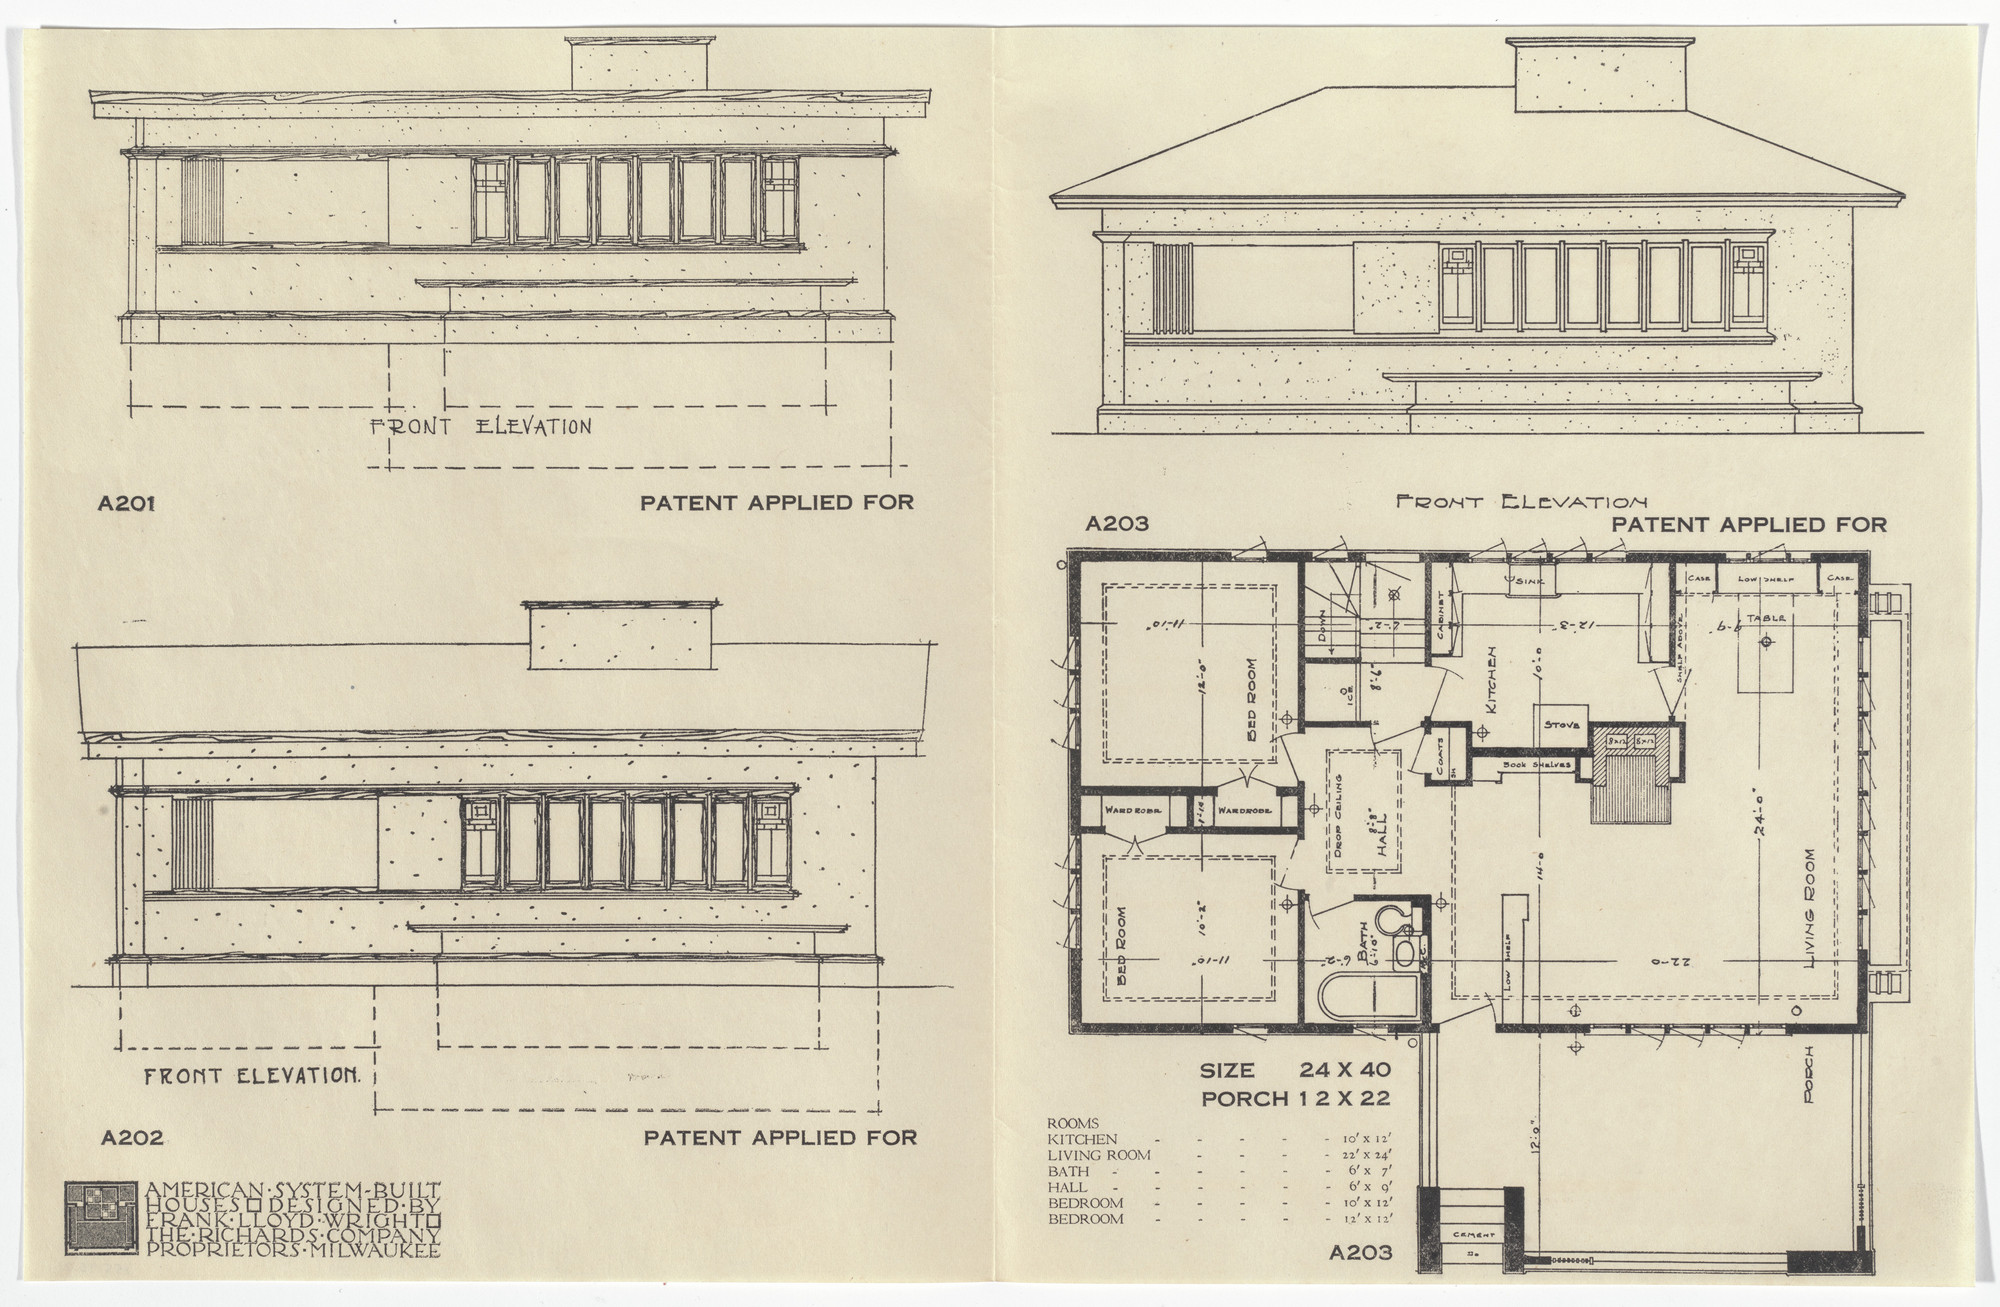 Frank Lloyd Wright. American System-Built Houses for The Richards Company project, Milwaukee, Wisconsin (Plan and elevations). 1915-17